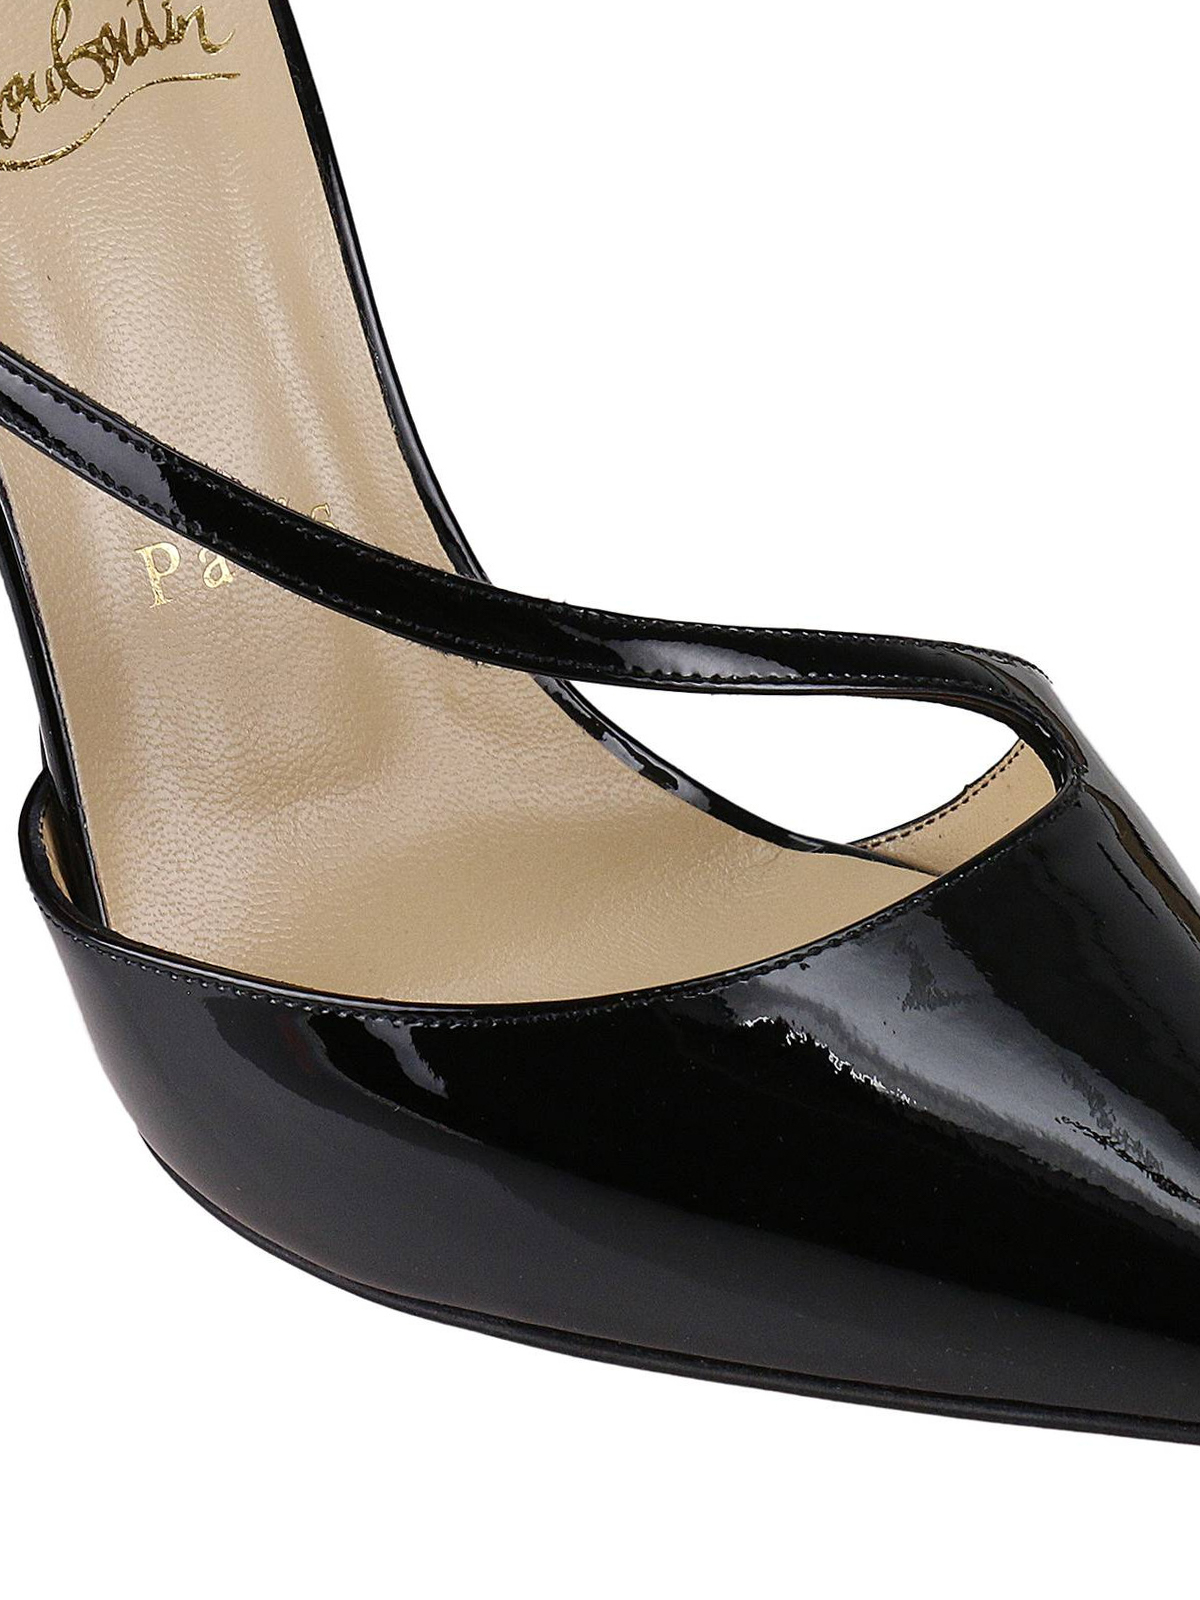 on sale 5ca1c 95f75 Christian Louboutin - Fliketta patent d'Orsay court shoes ...